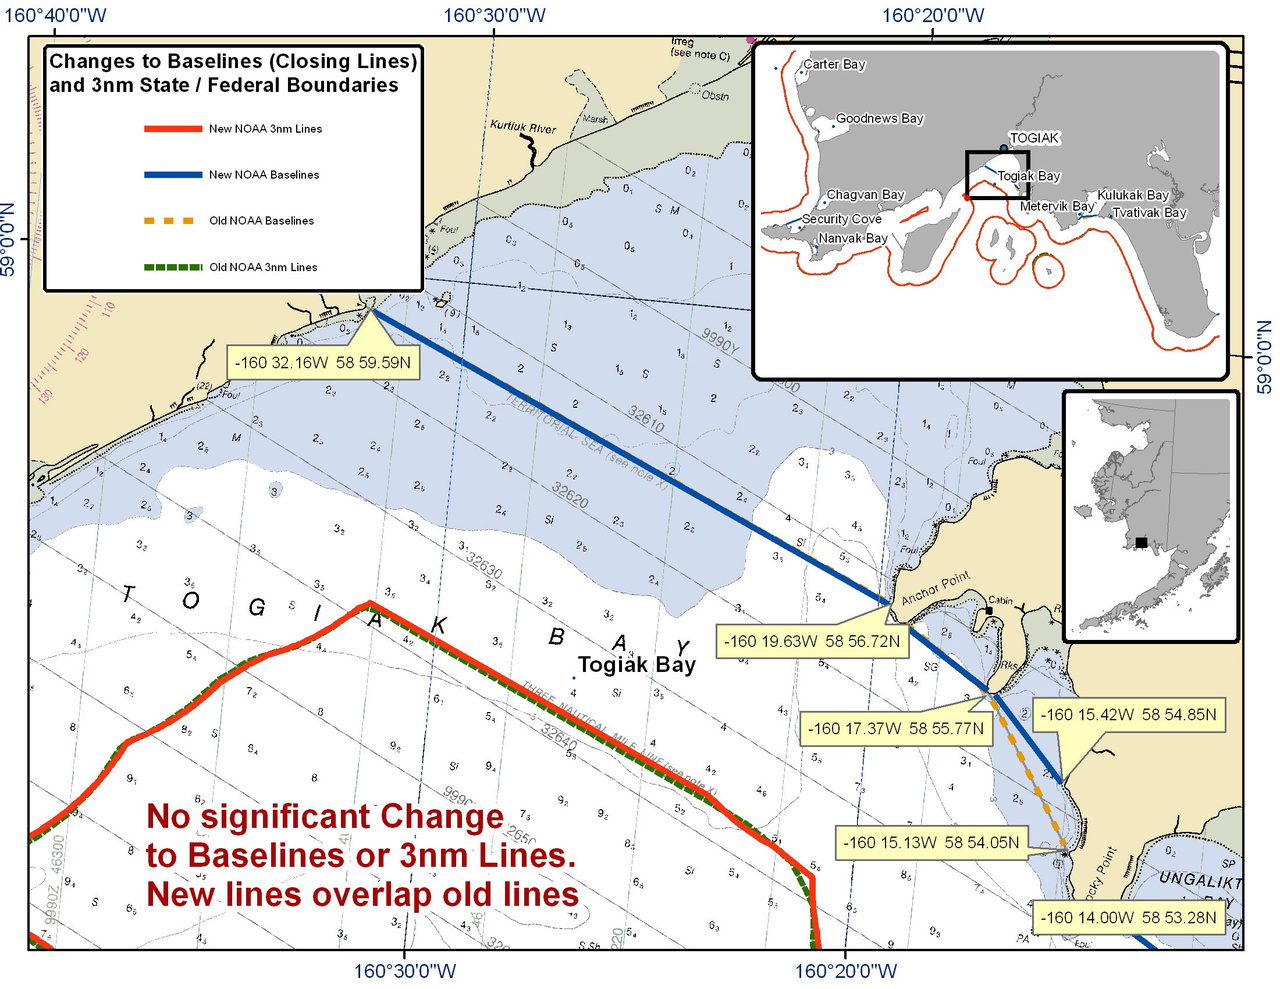 Chart for Togiak Bay